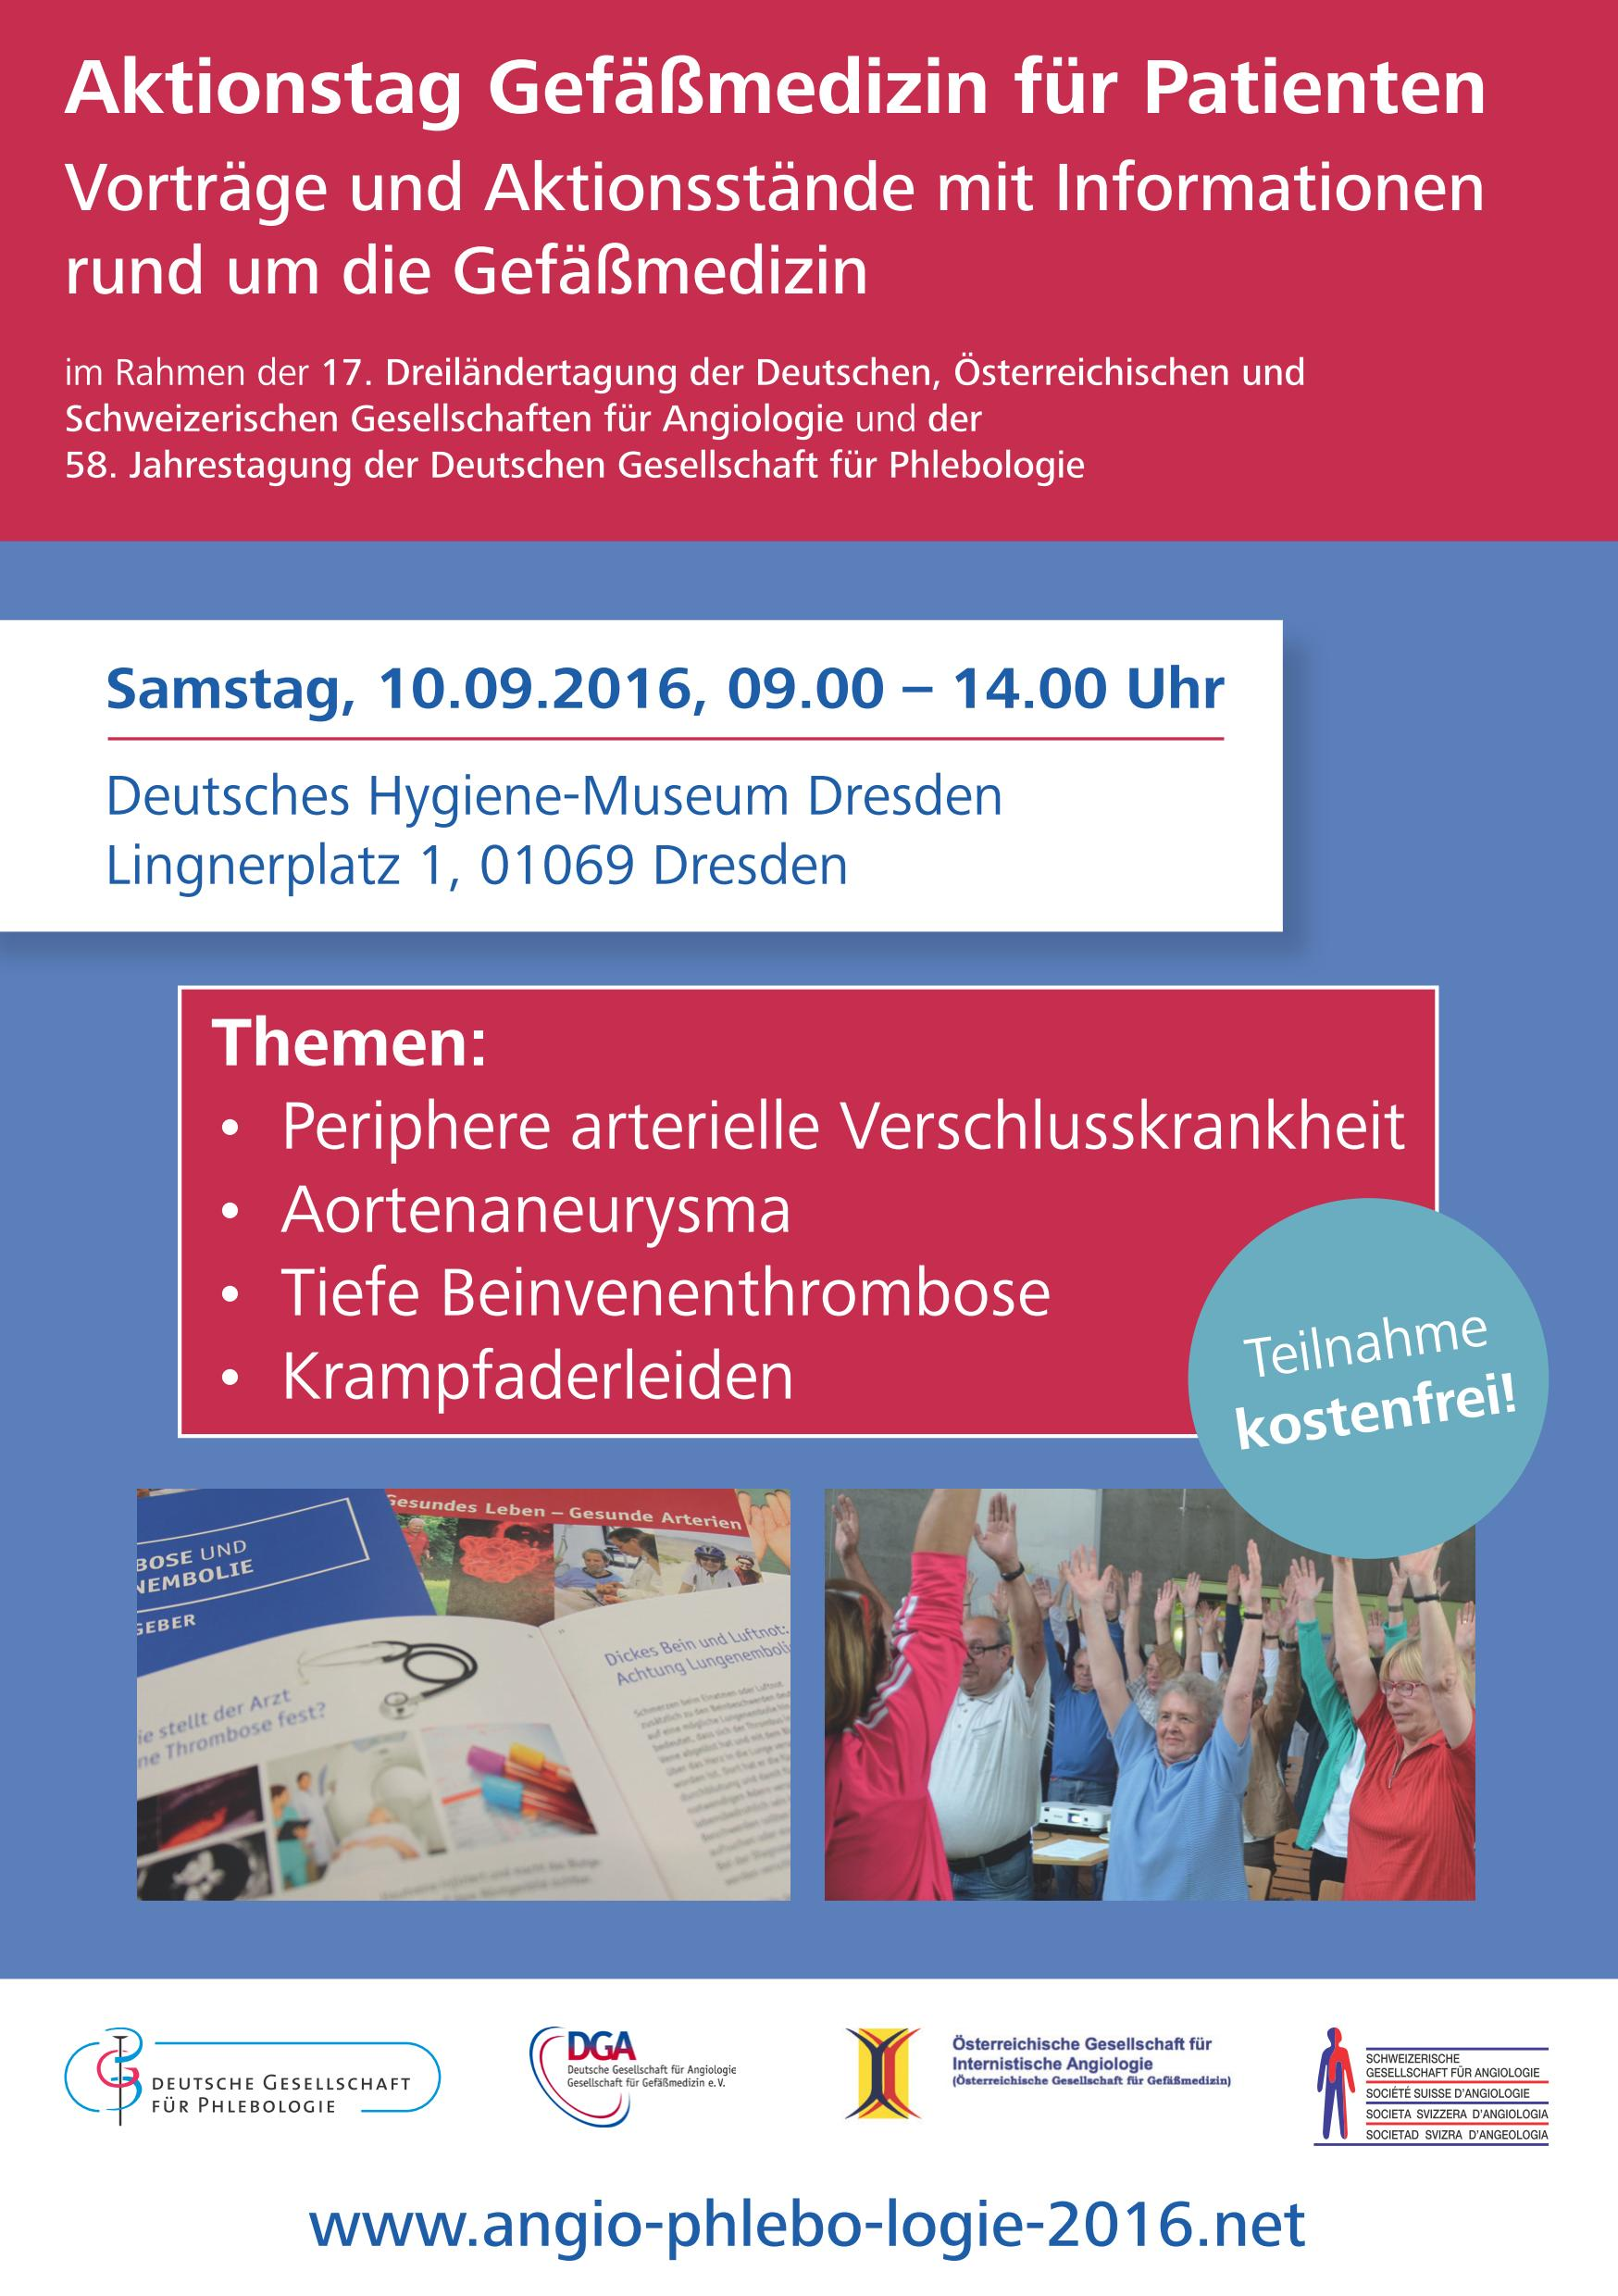 DGA_DGP_2016_Patiententag_Flyer_16 08 16_Web_01